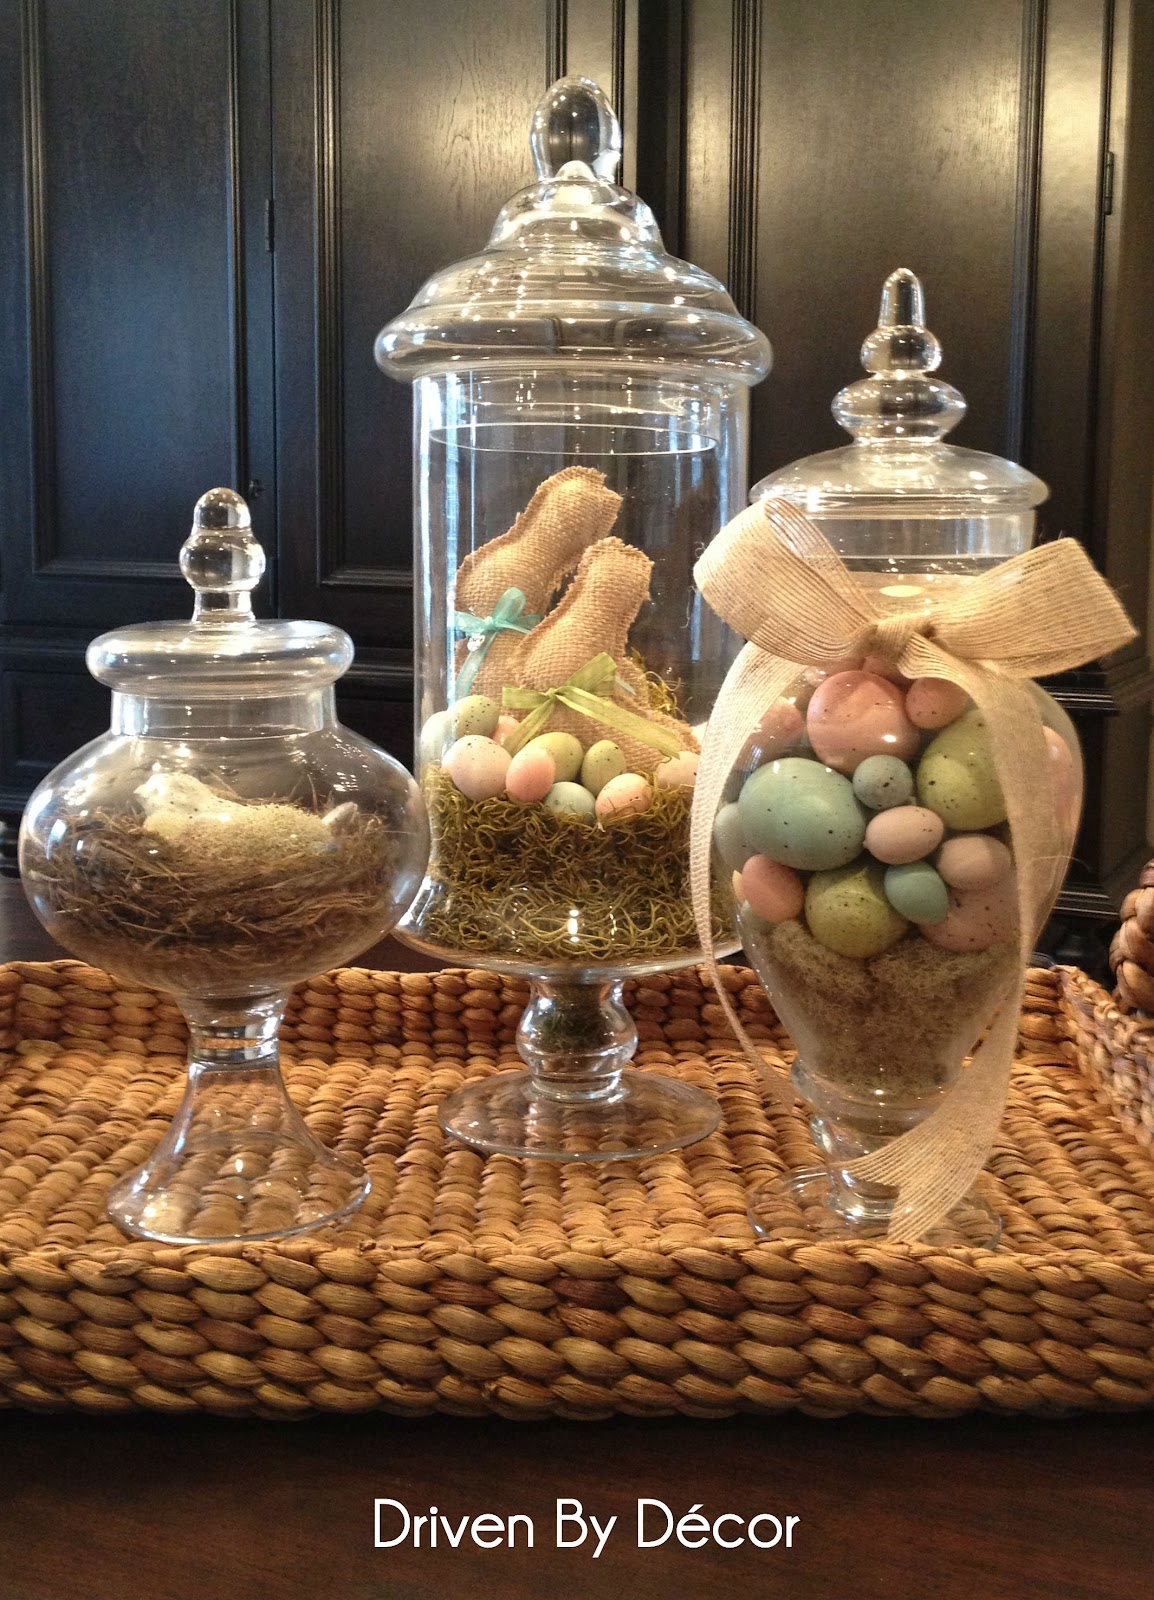 Best Apothecary Jars Decorated For Spring Easter Driven By Decor This Month